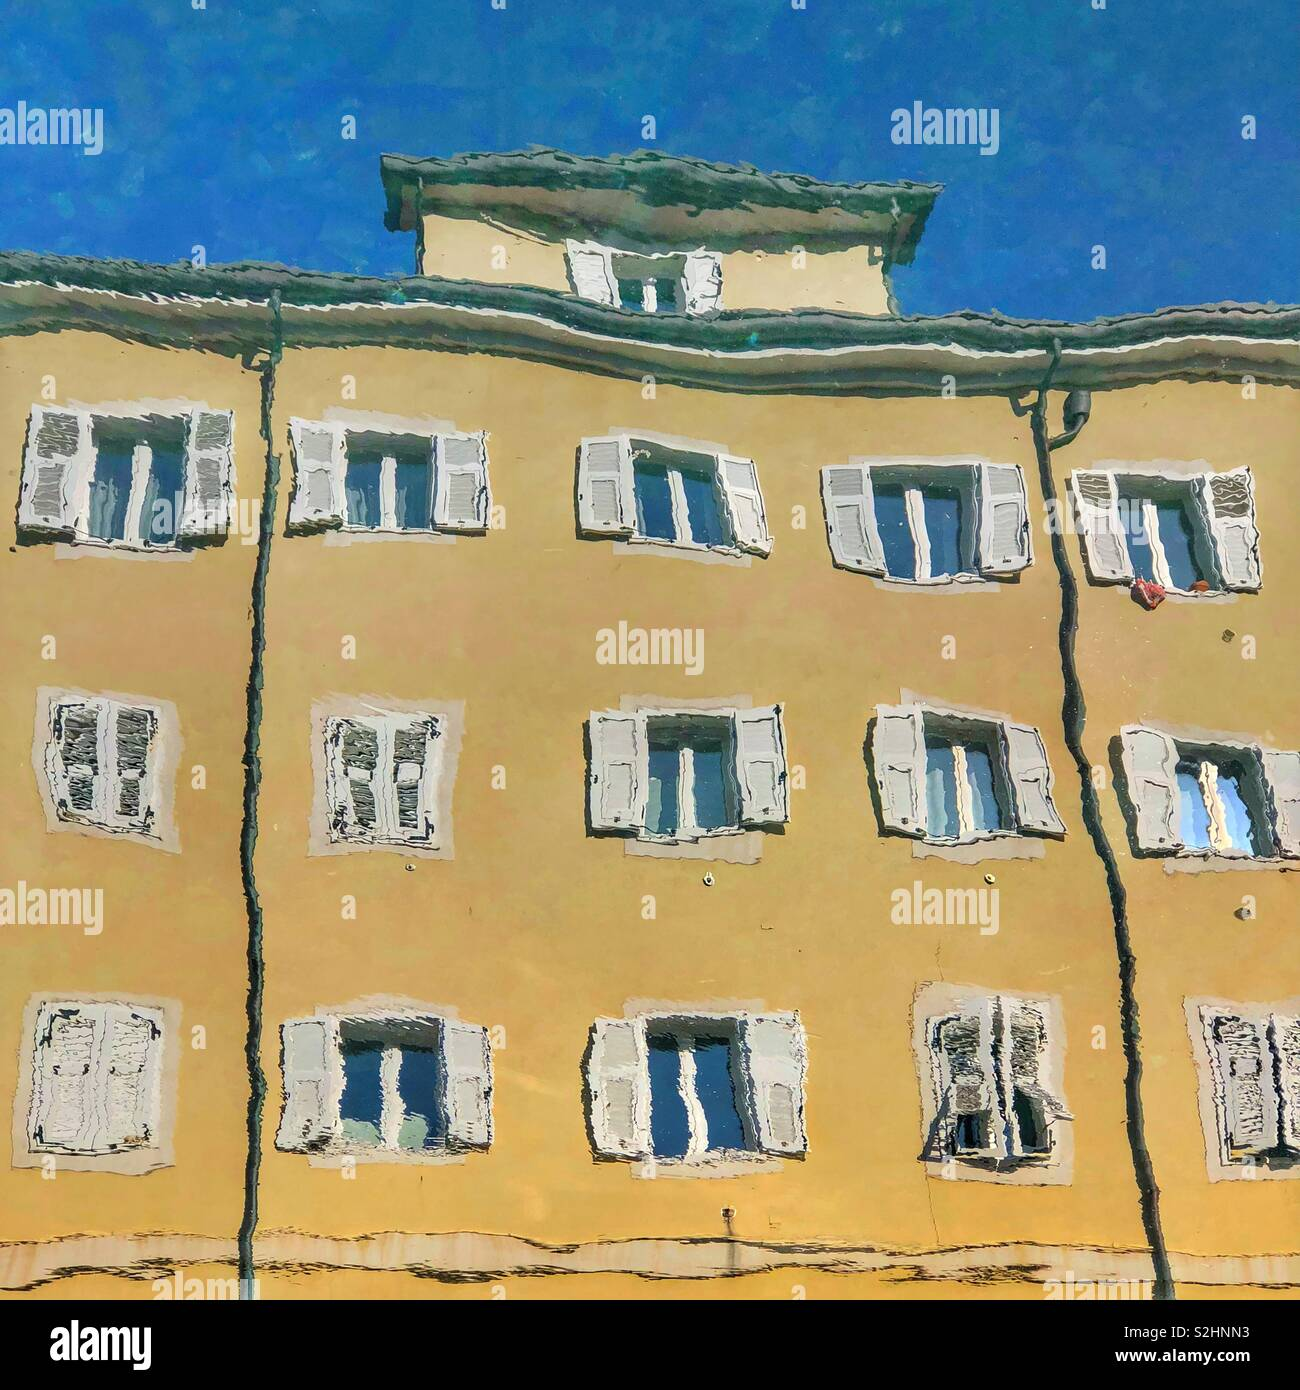 Reflections of a building in the water - Muggia, Italy - Stock Image